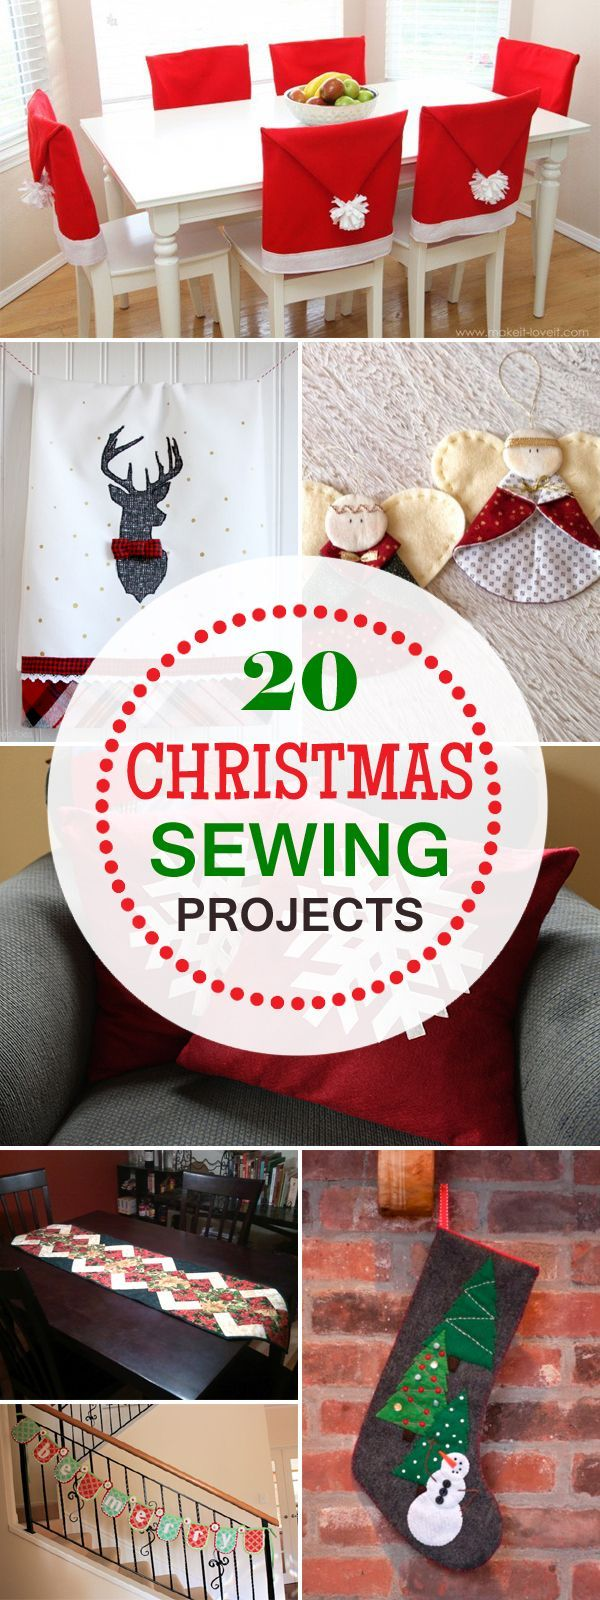 20 Cute And Easy Christmas Sewing Projects Craft Ideas Pinterest